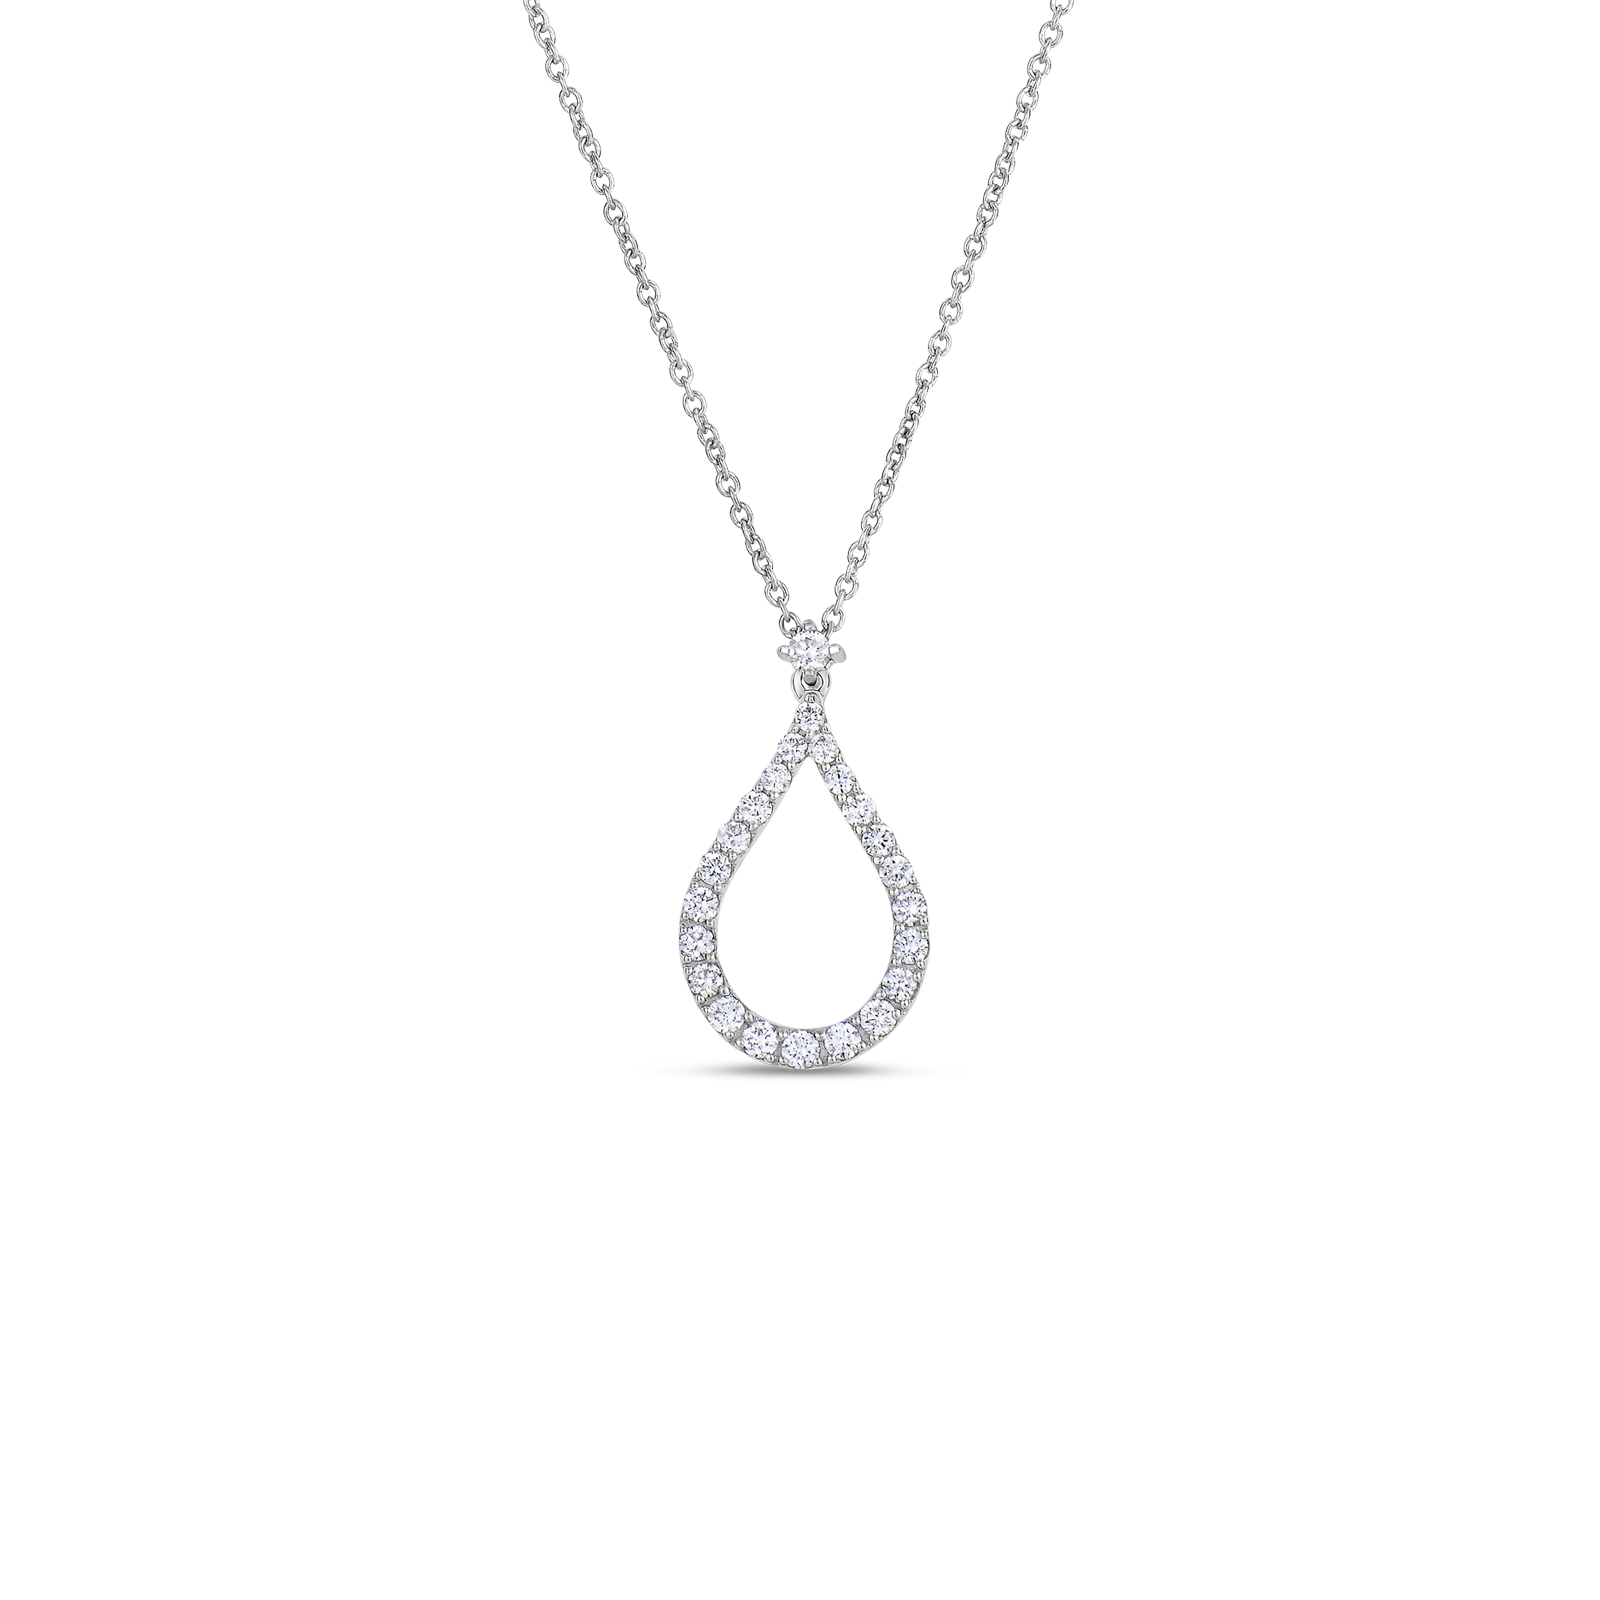 Roberto Coin Tiny Treasures 18k White Gold Art Deco Pendant With Diamonds